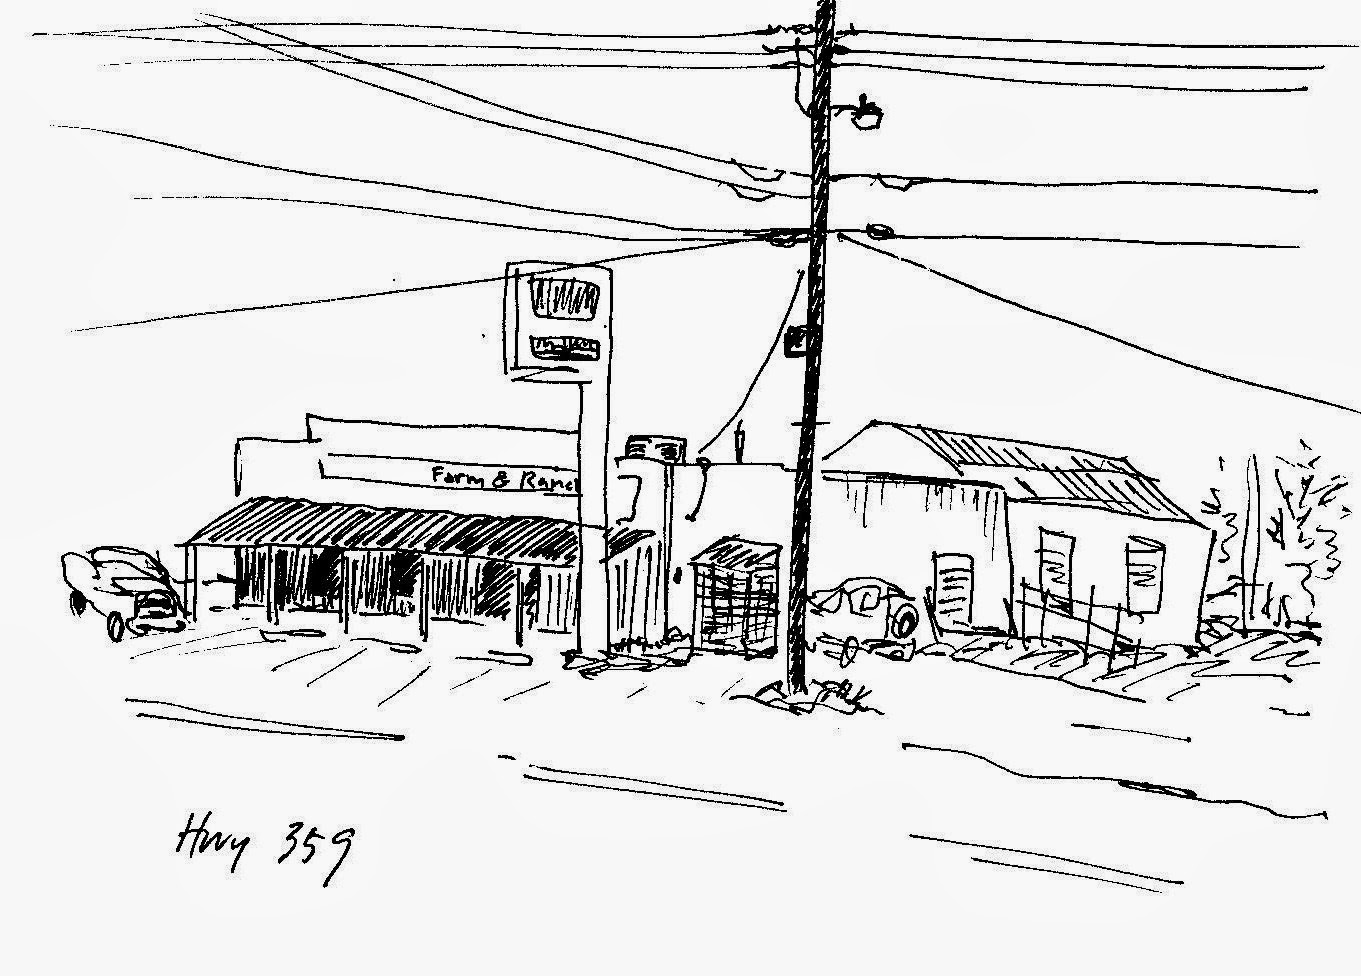 sketch by David Borden of a small country store